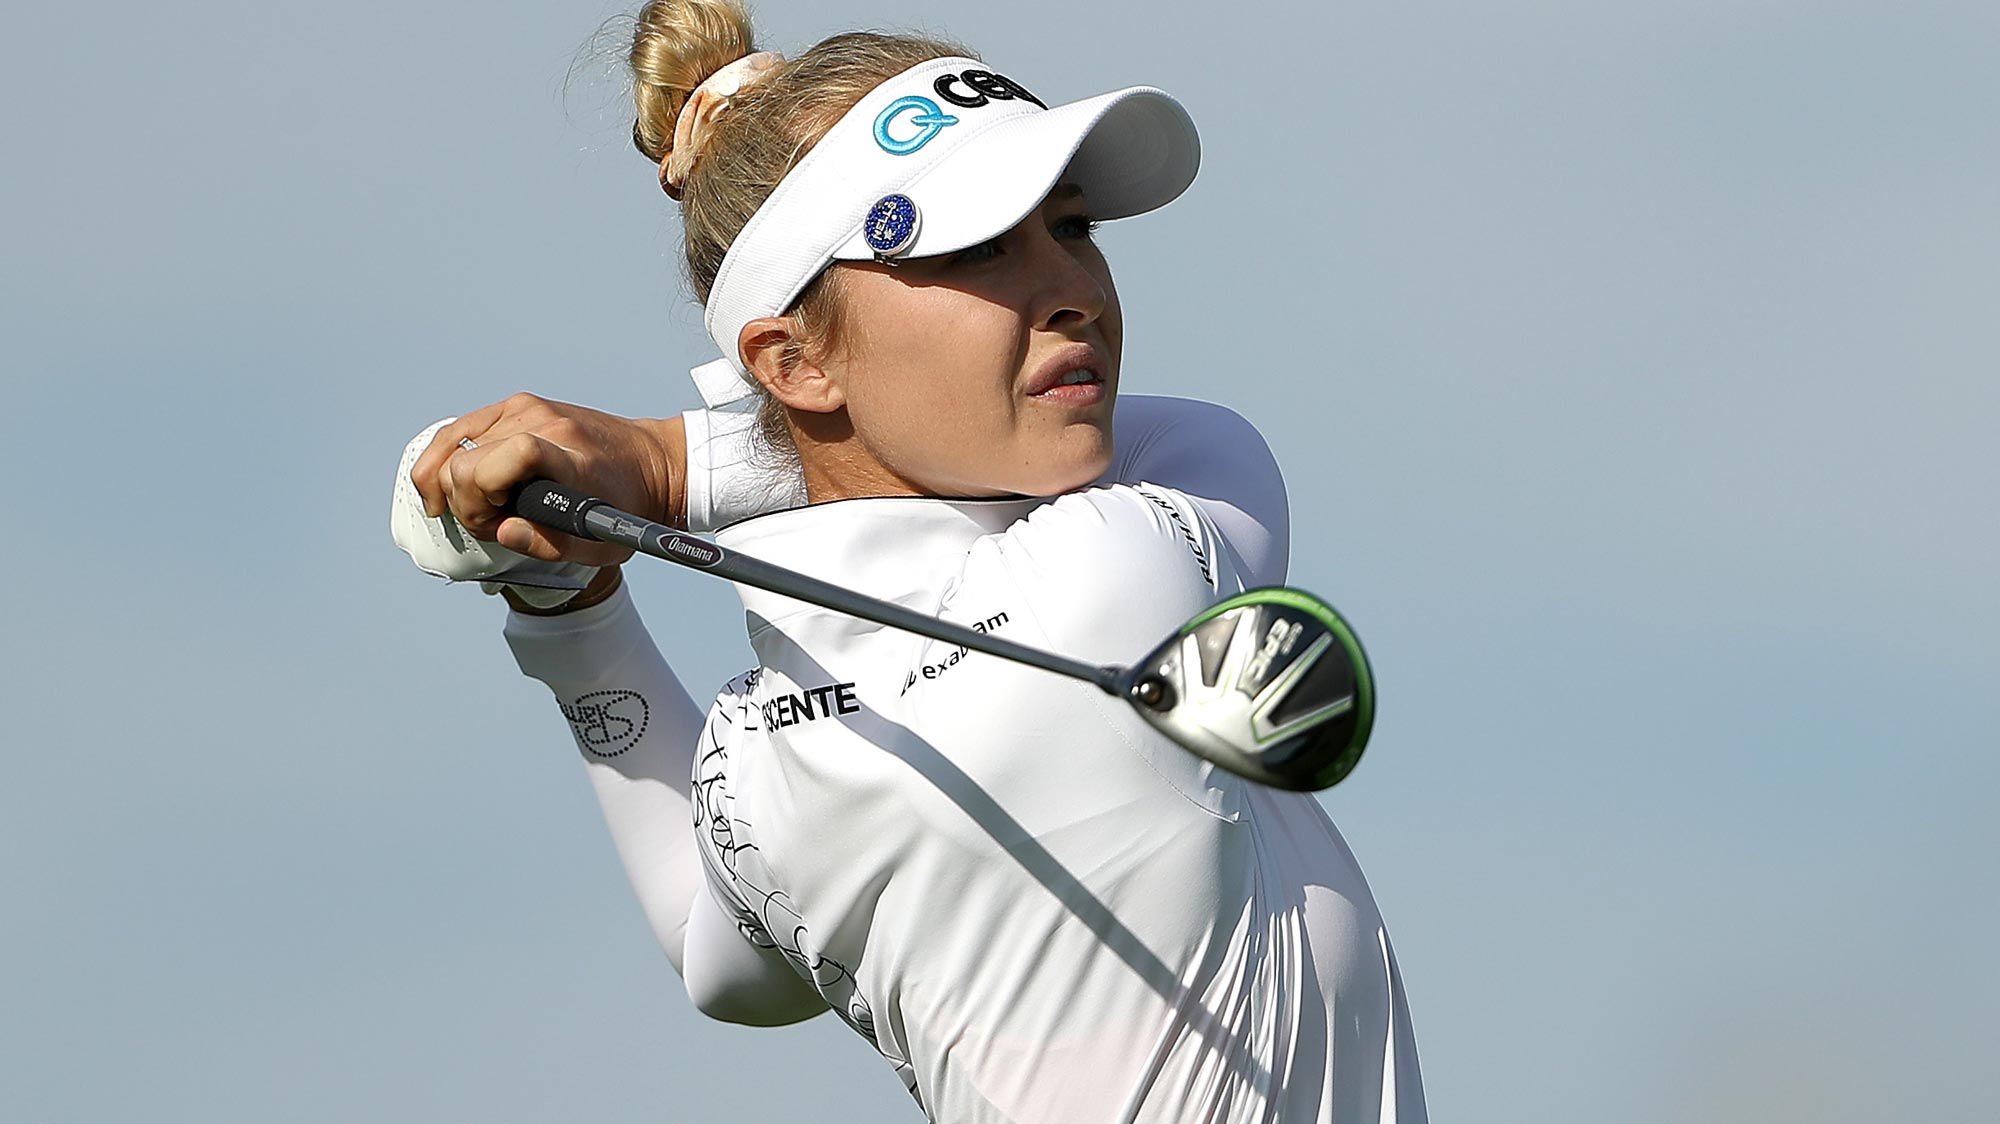 Nelly Korda plays her shot from the 15th tee during the first round of the LPGA Drive On Championship